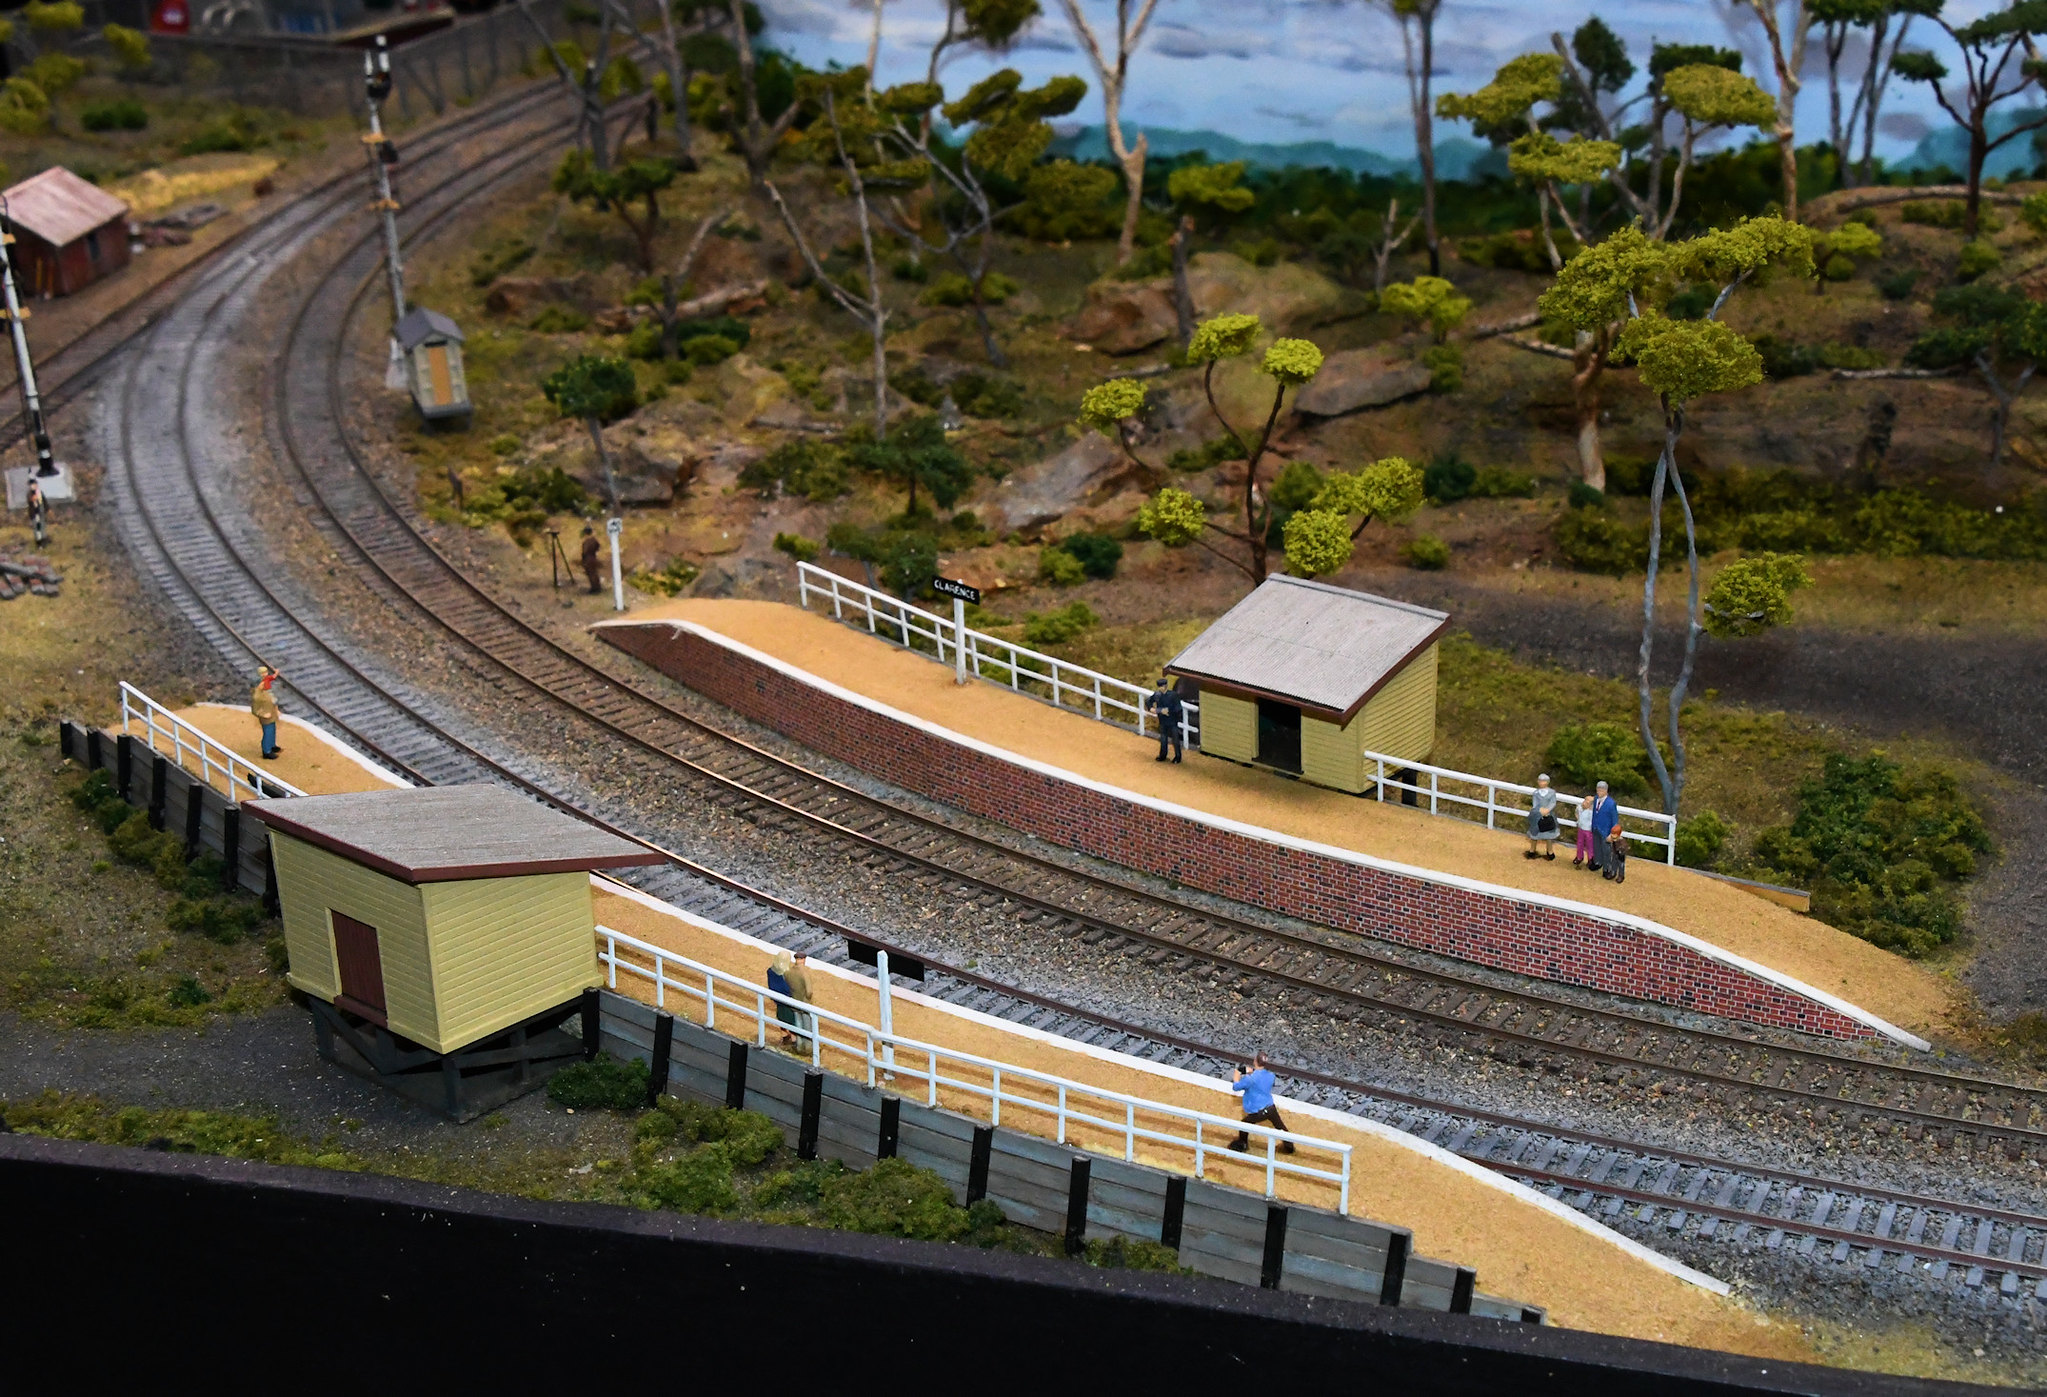 Clarence, Blue Mountains Layout, Epping Model Railway Exhibition, Rosehill, Sydney, NSW.